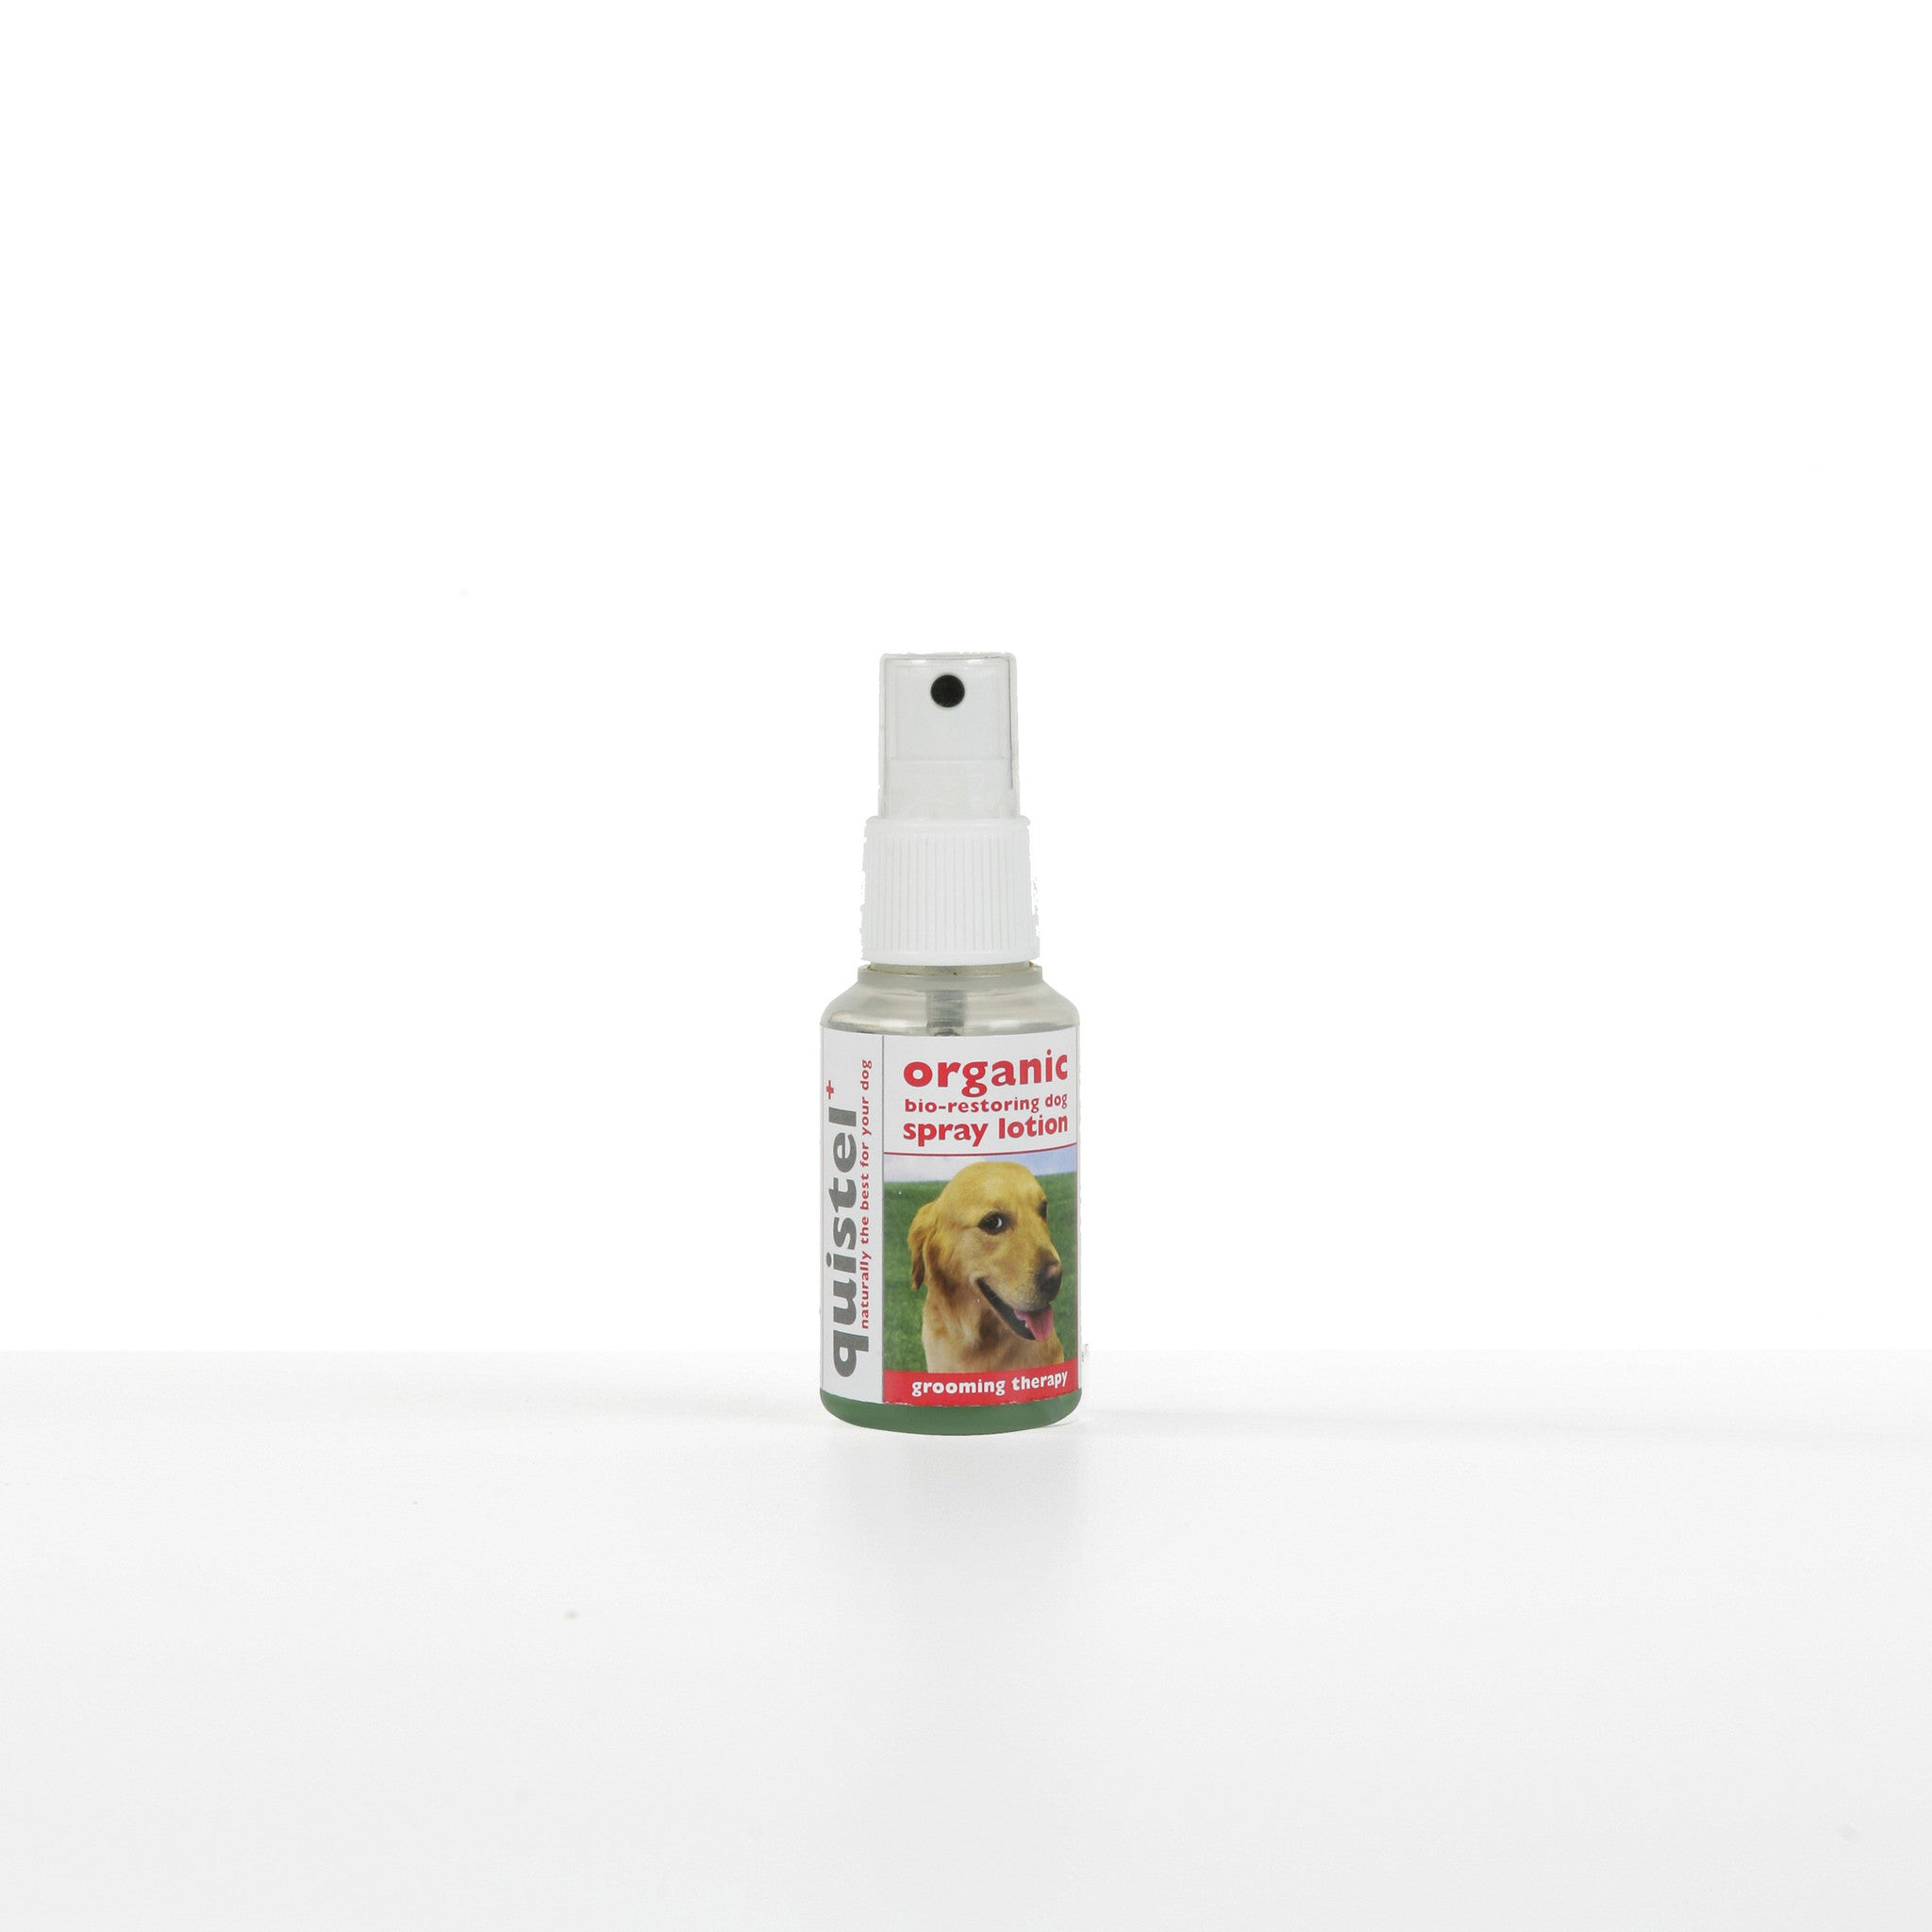 Quistels Organic Grooming Dog Lotion - 50ml Trial Size